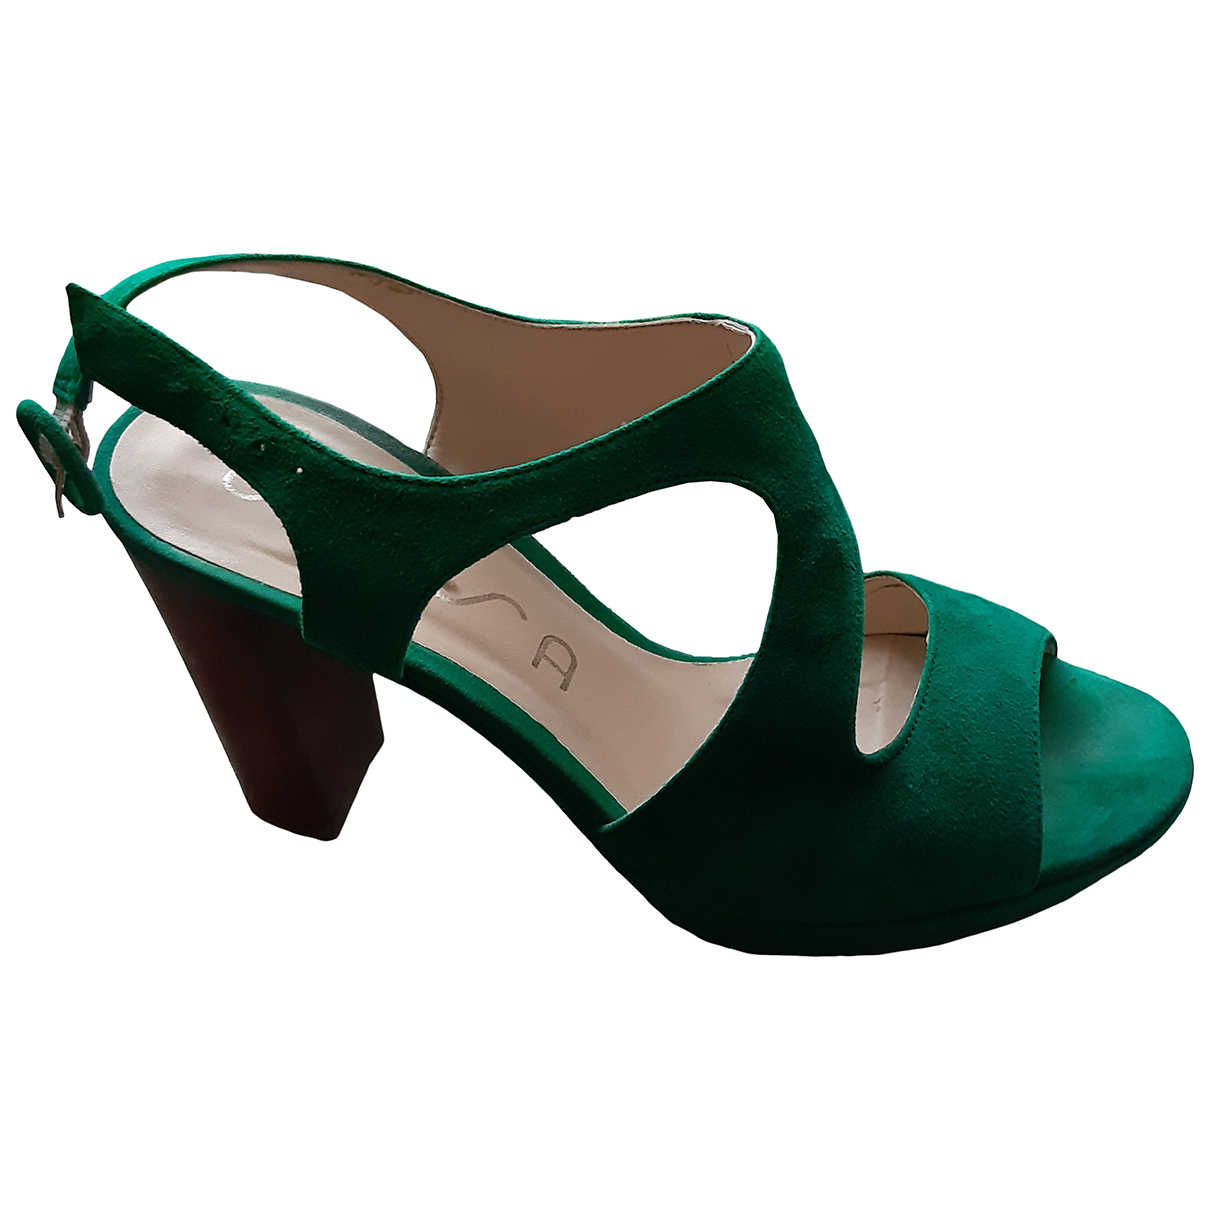 Unisa N Green Suede Sandals for Women 38 EU